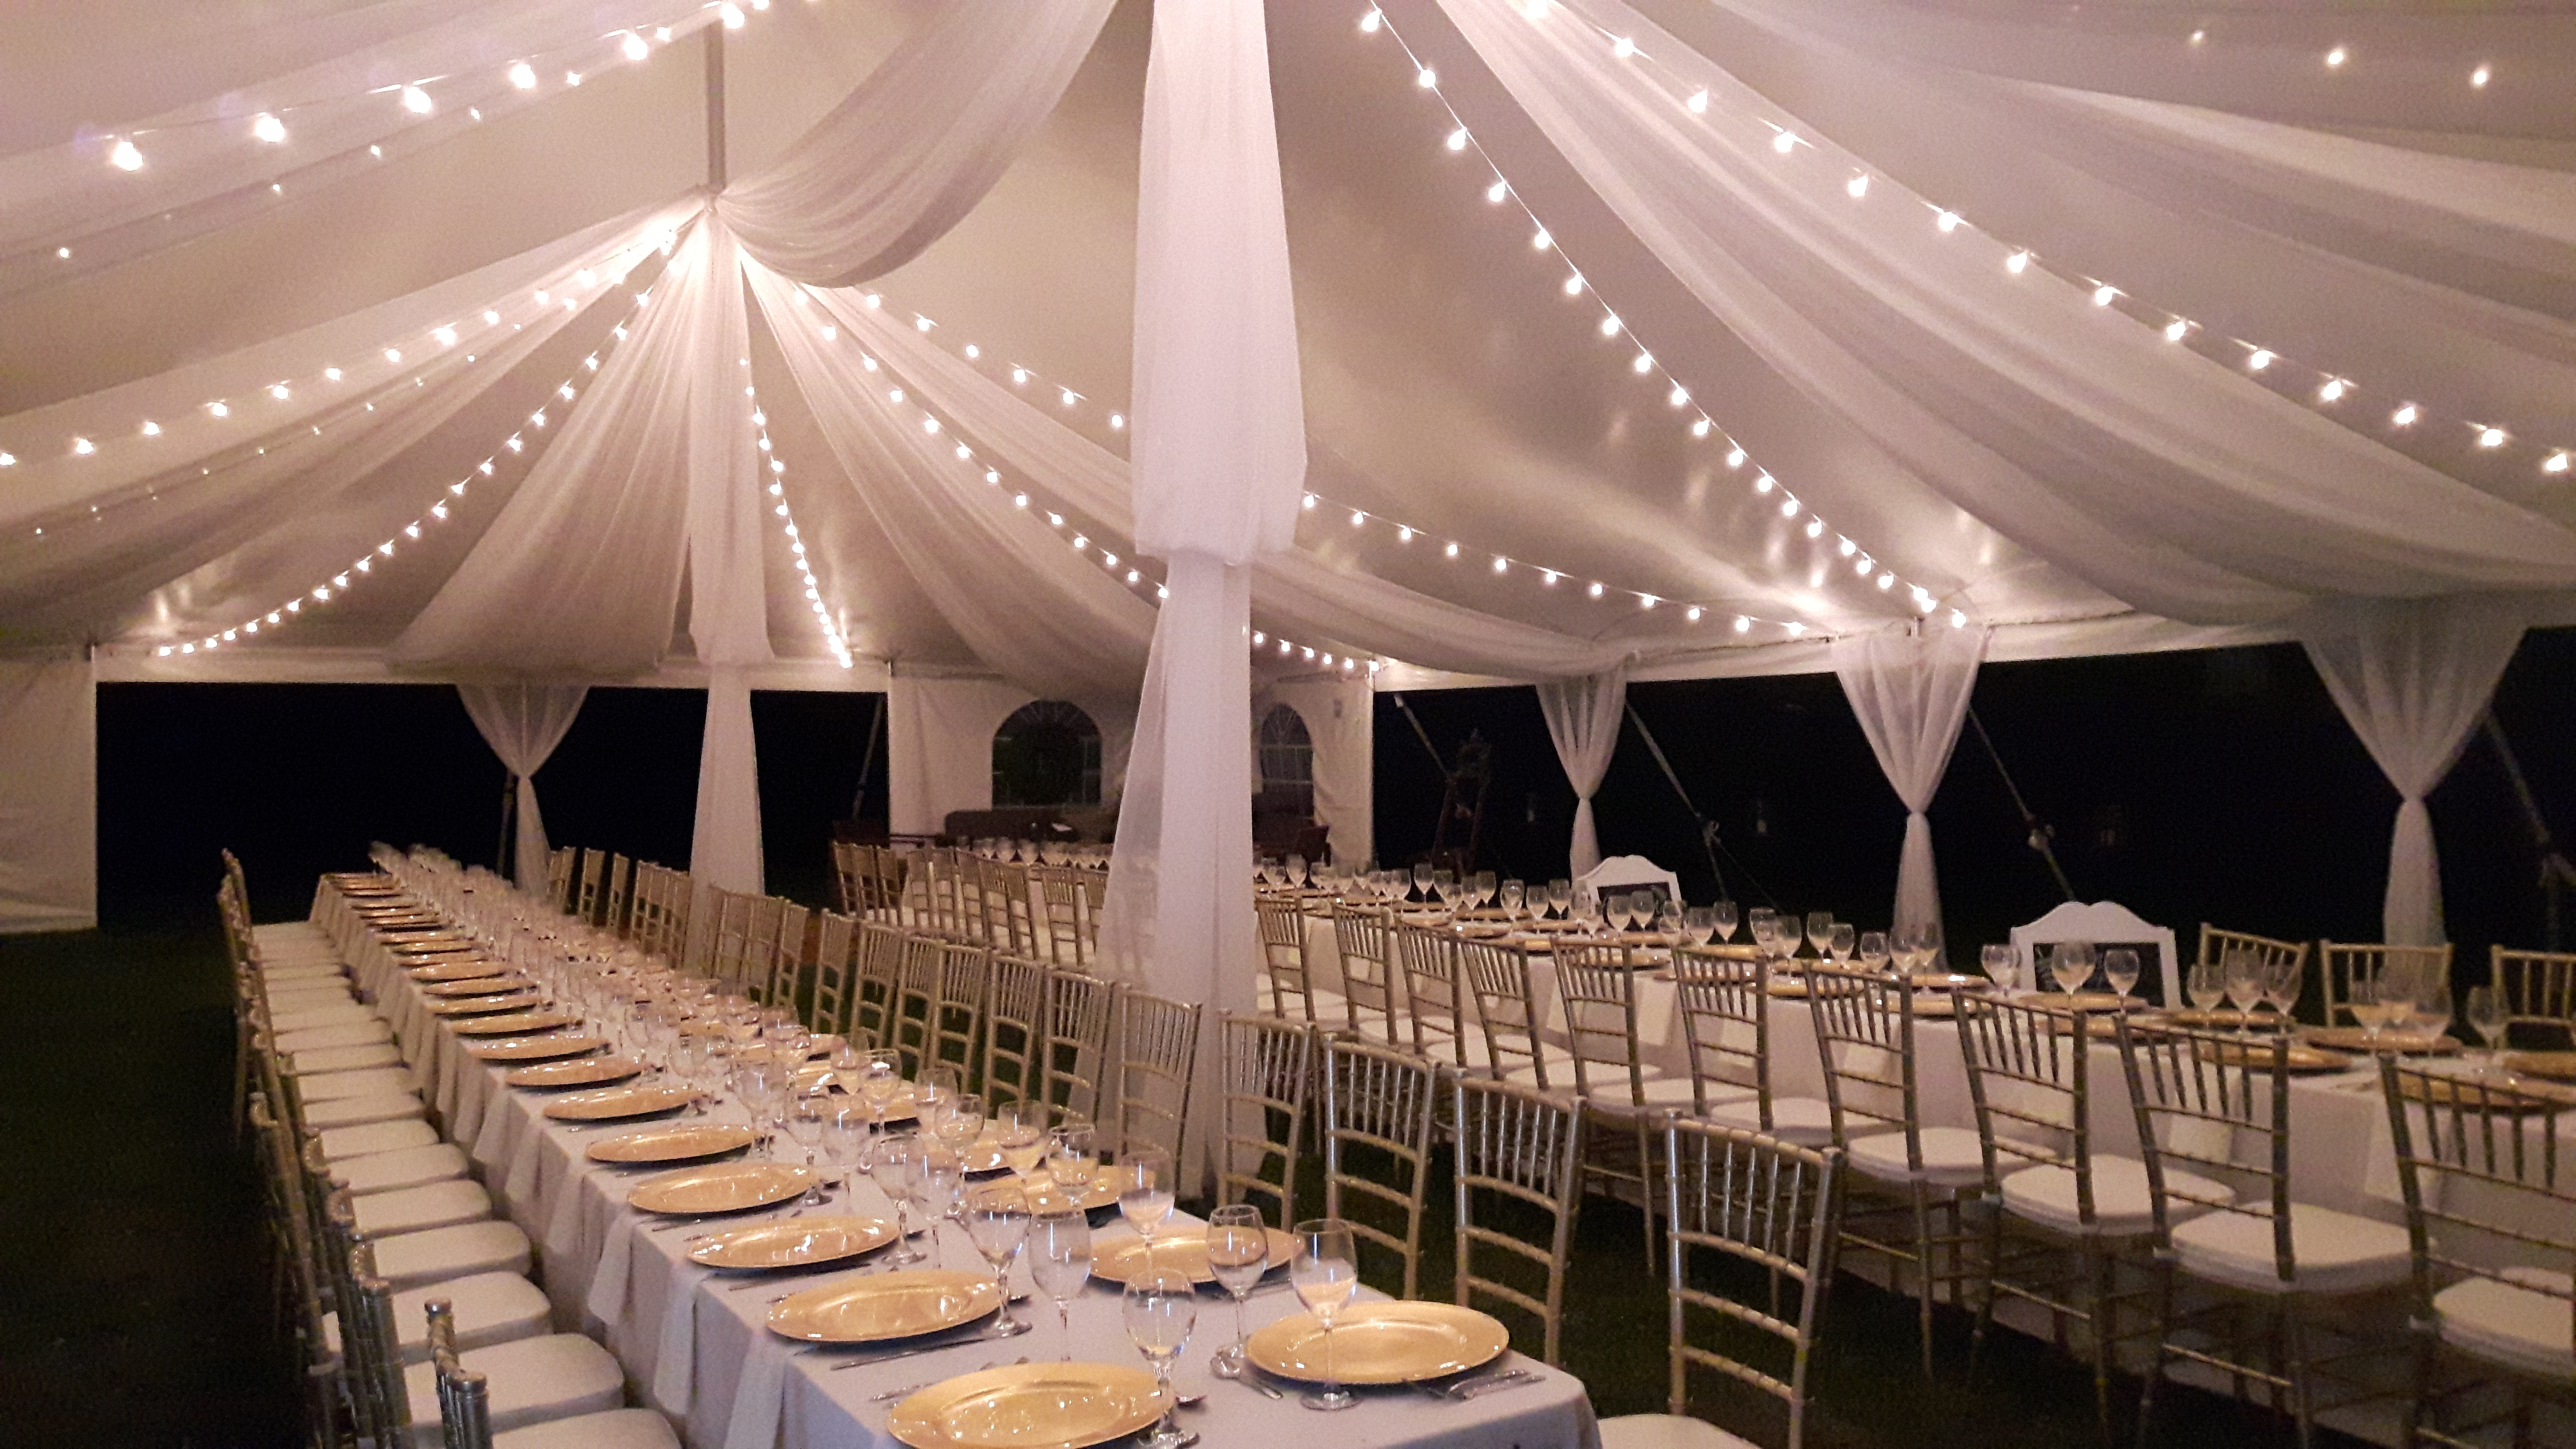 Tent Draping White String Globe Lights Valley Tent Party Rentals